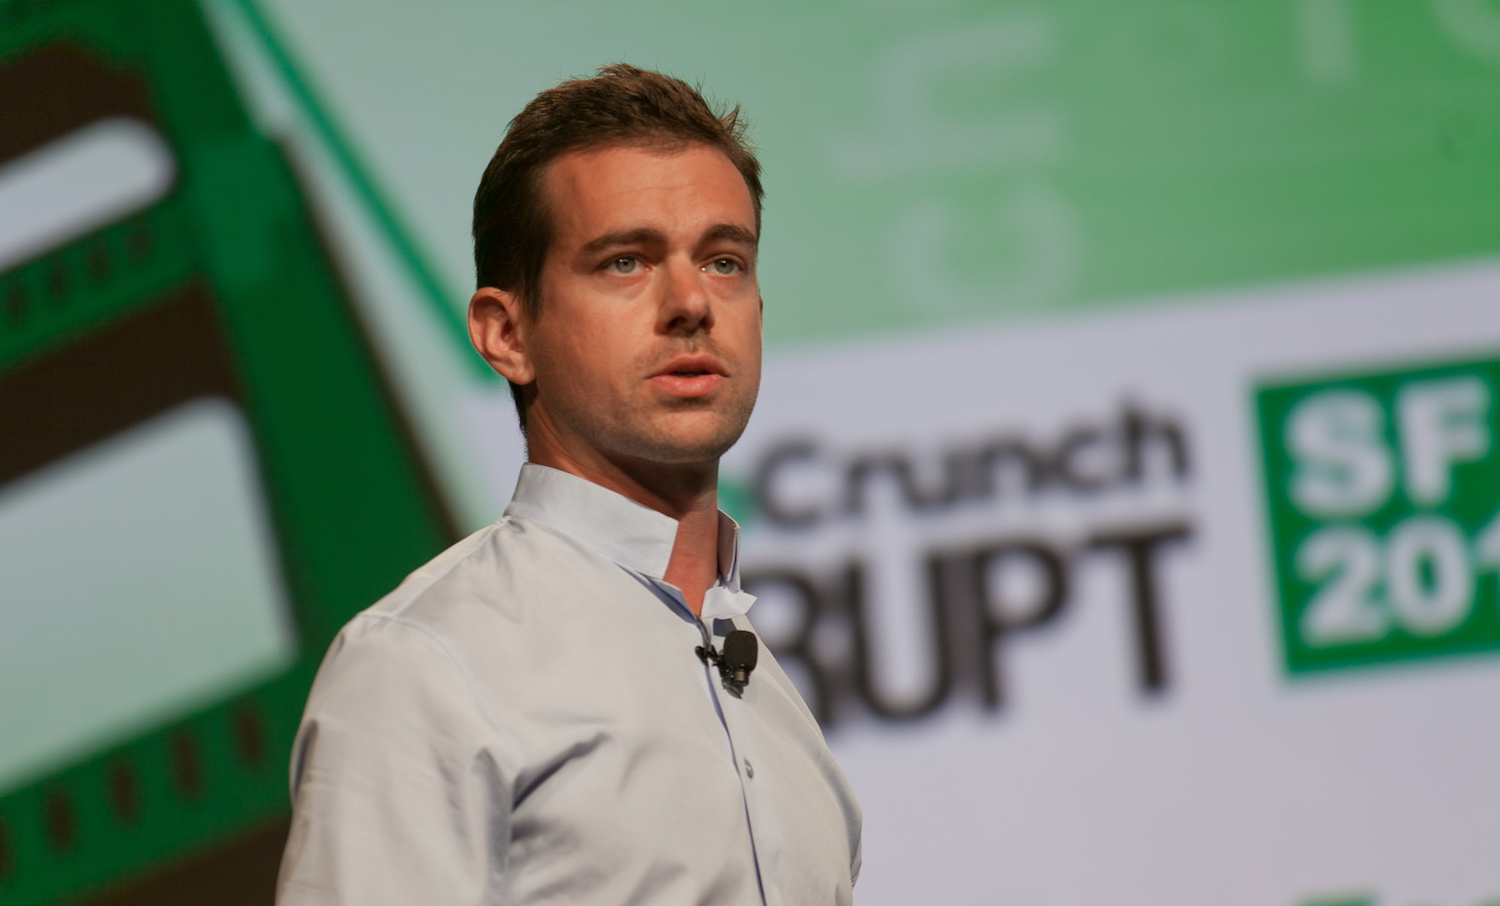 Square Hires Ex-Google Director as First Member of New